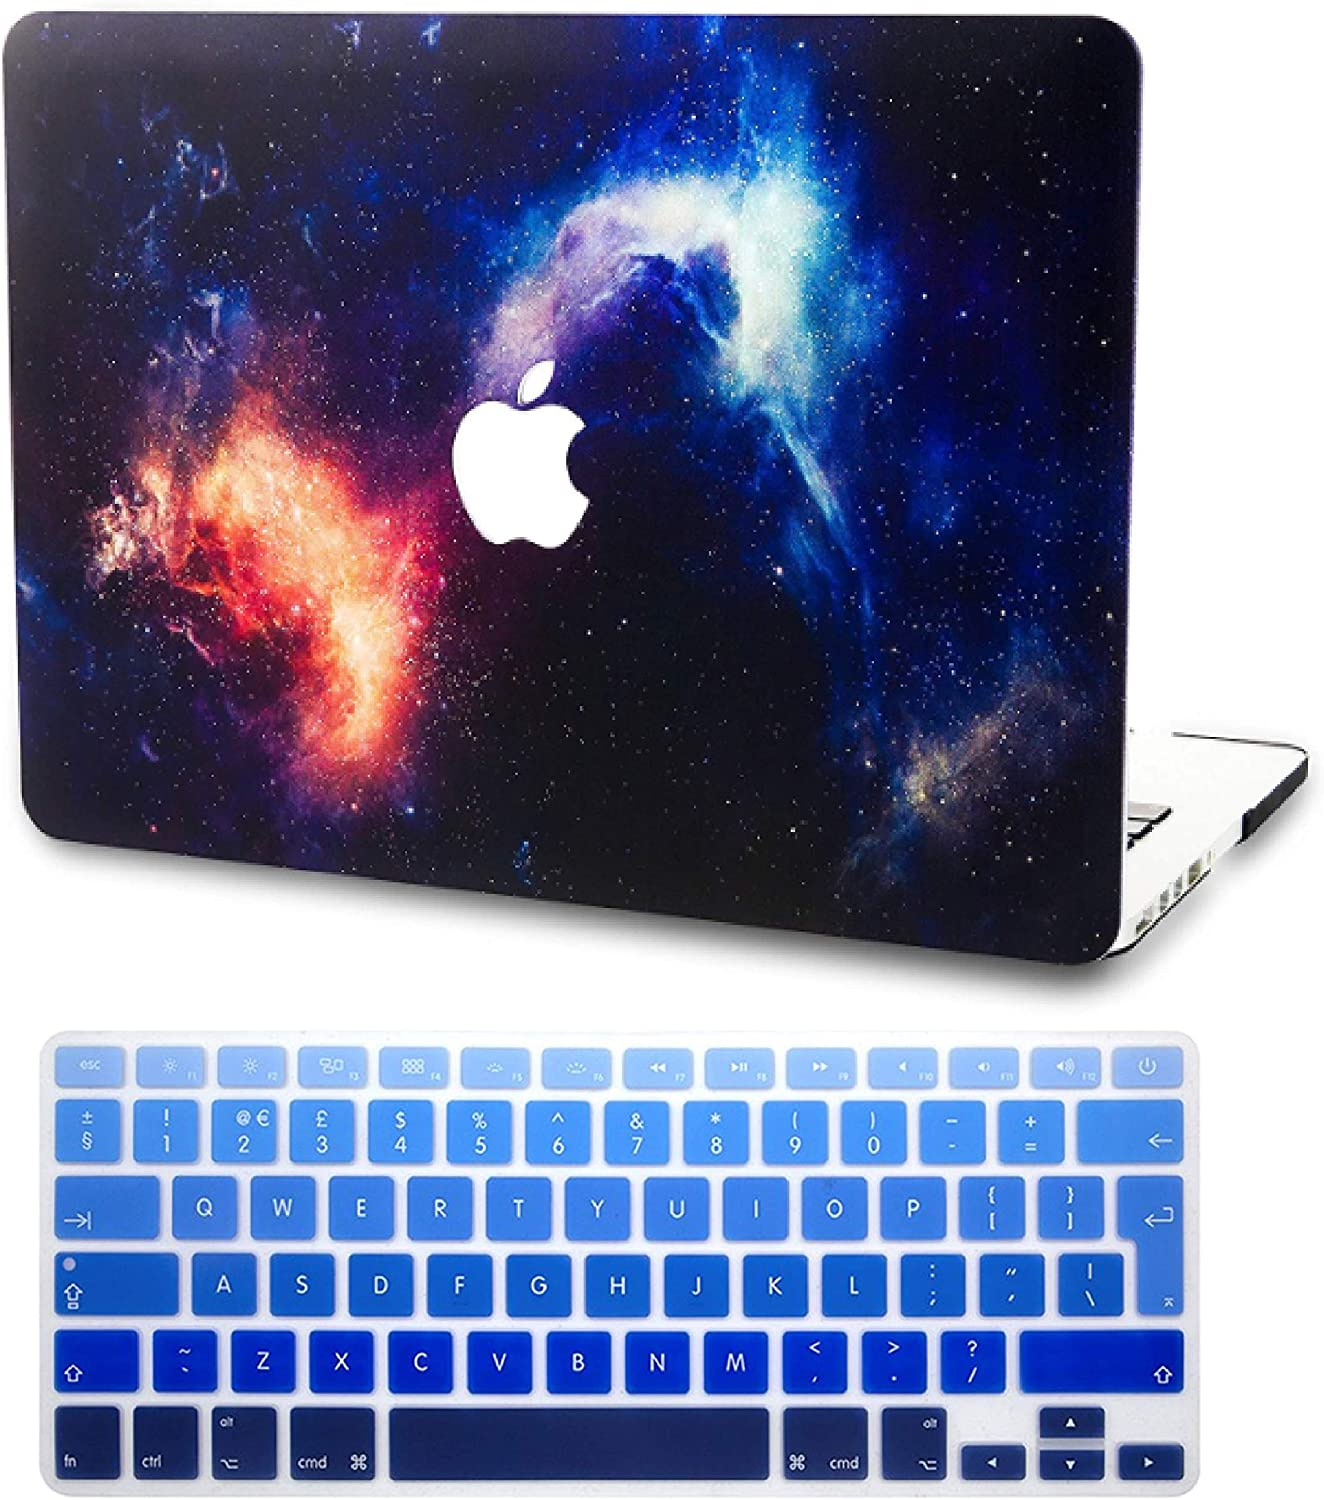 "KECC Laptop Case for MacBook Pro 15"" (2019/2018/2017/2016) w/Keyboard Cover Plastic Hard Shell A1990/A1707 Touch Bar 2 in 1 Bundle (Nebula)"